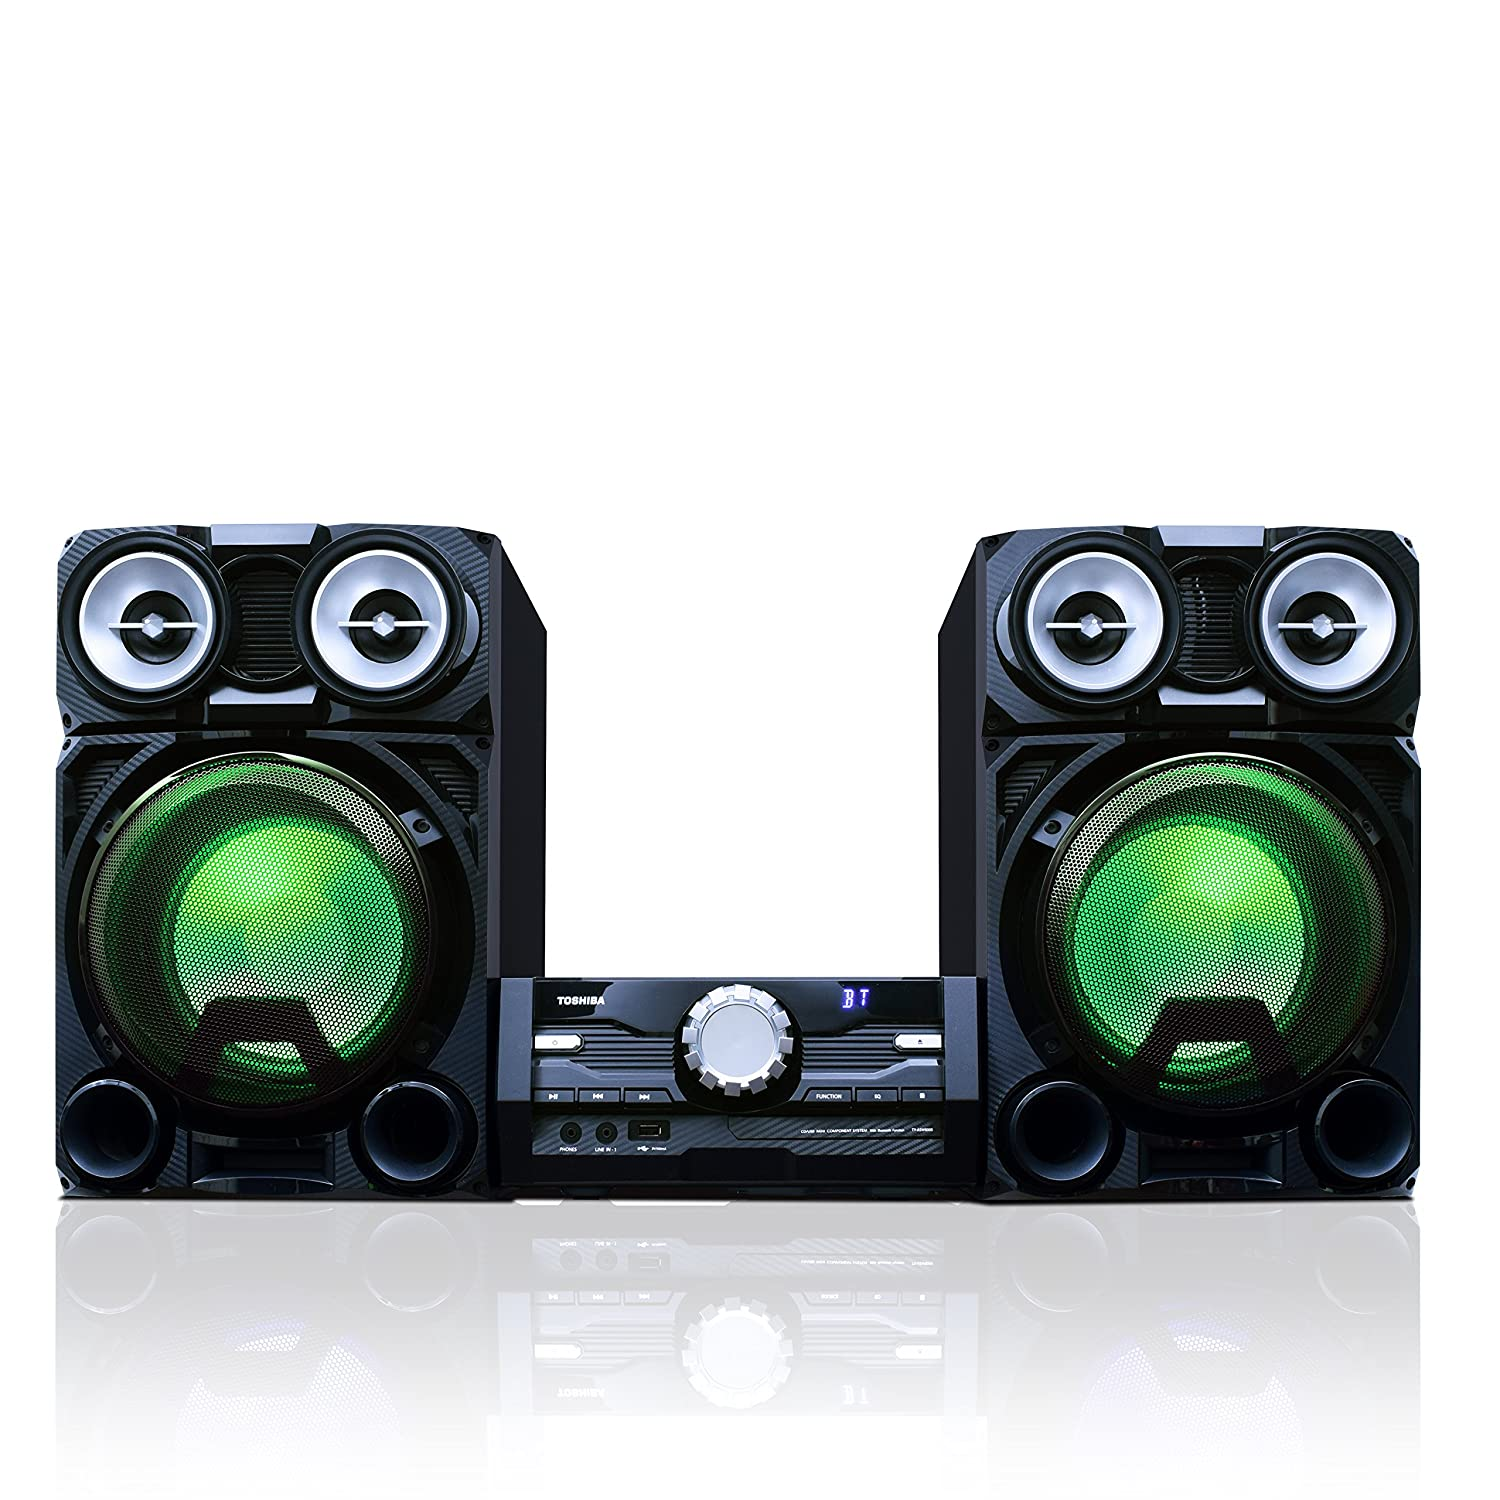 Amazon.com: Toshiba 800 Watt Bluetooth Stereo Sound System: Wireless Mini  Component Home Speaker System with LED Lights: Electronics